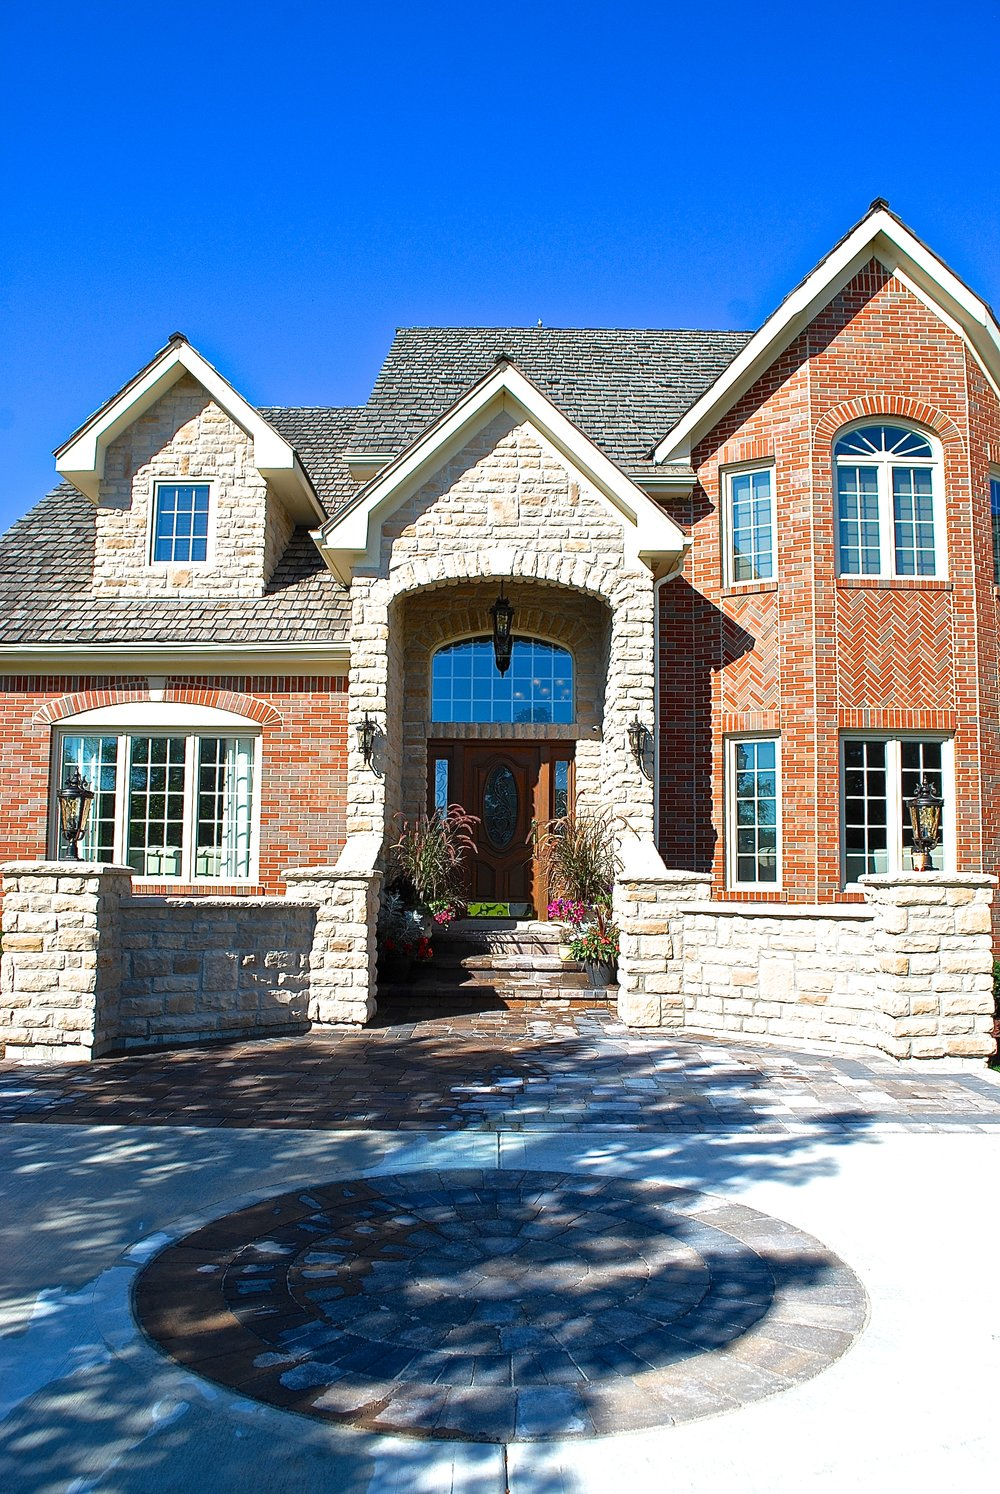 FRONT ENTRY REMODEL WITH NEW CONCRETE DRIVEWAY WITH BRICK PAVER ACCENTS & INLAYS. NEW STONE PILLARS AND STOEN FACADE REMODEL. LIGHTS ON STONE PILLARS